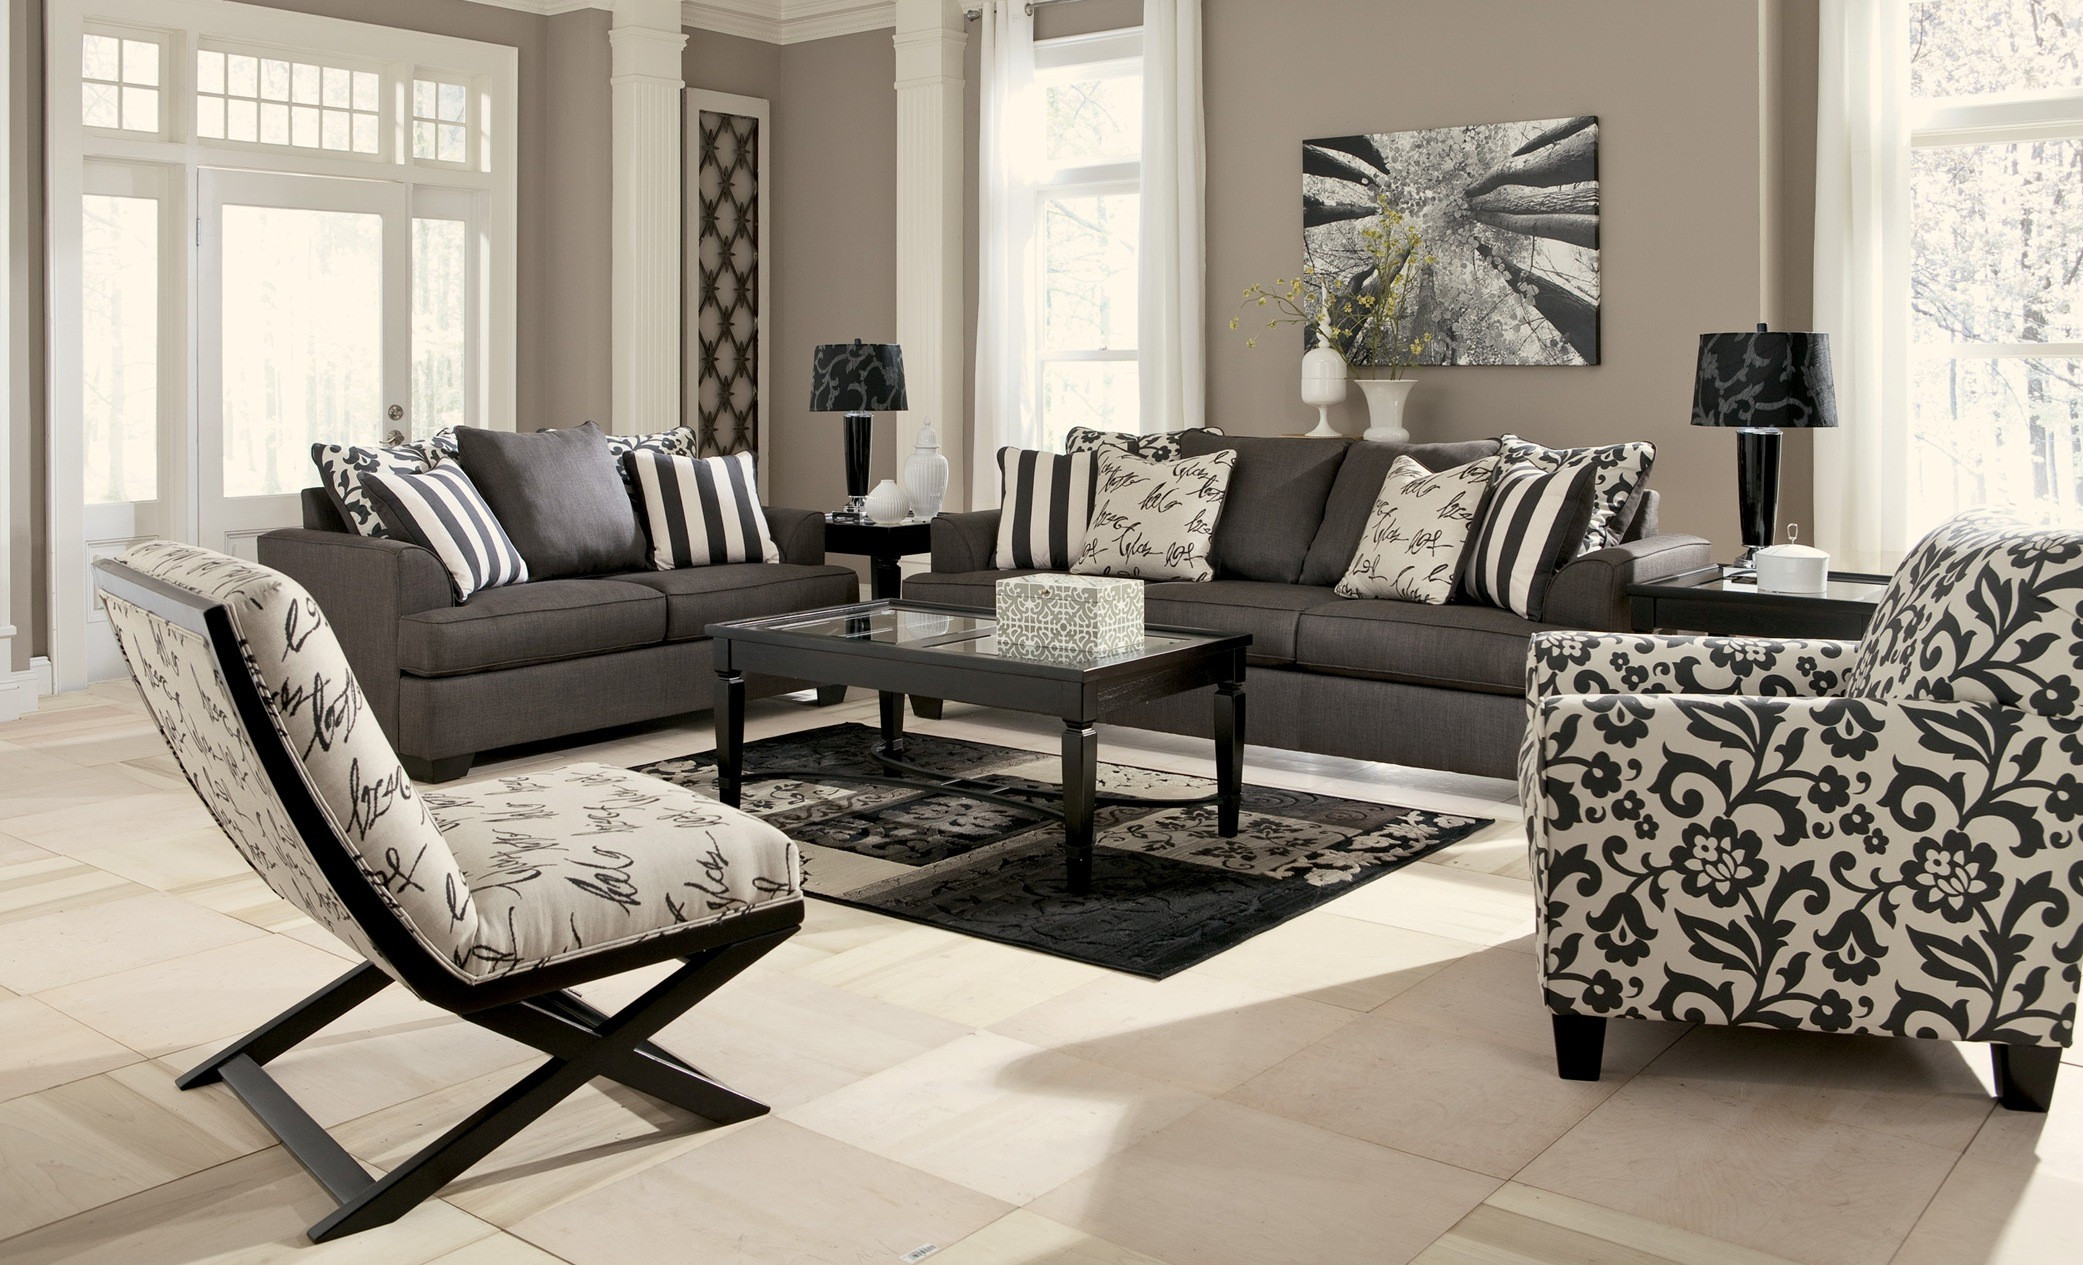 Best ideas about Living Room Couches . Save or Pin Levon Charcoal Living Room Set from Ashley Now.